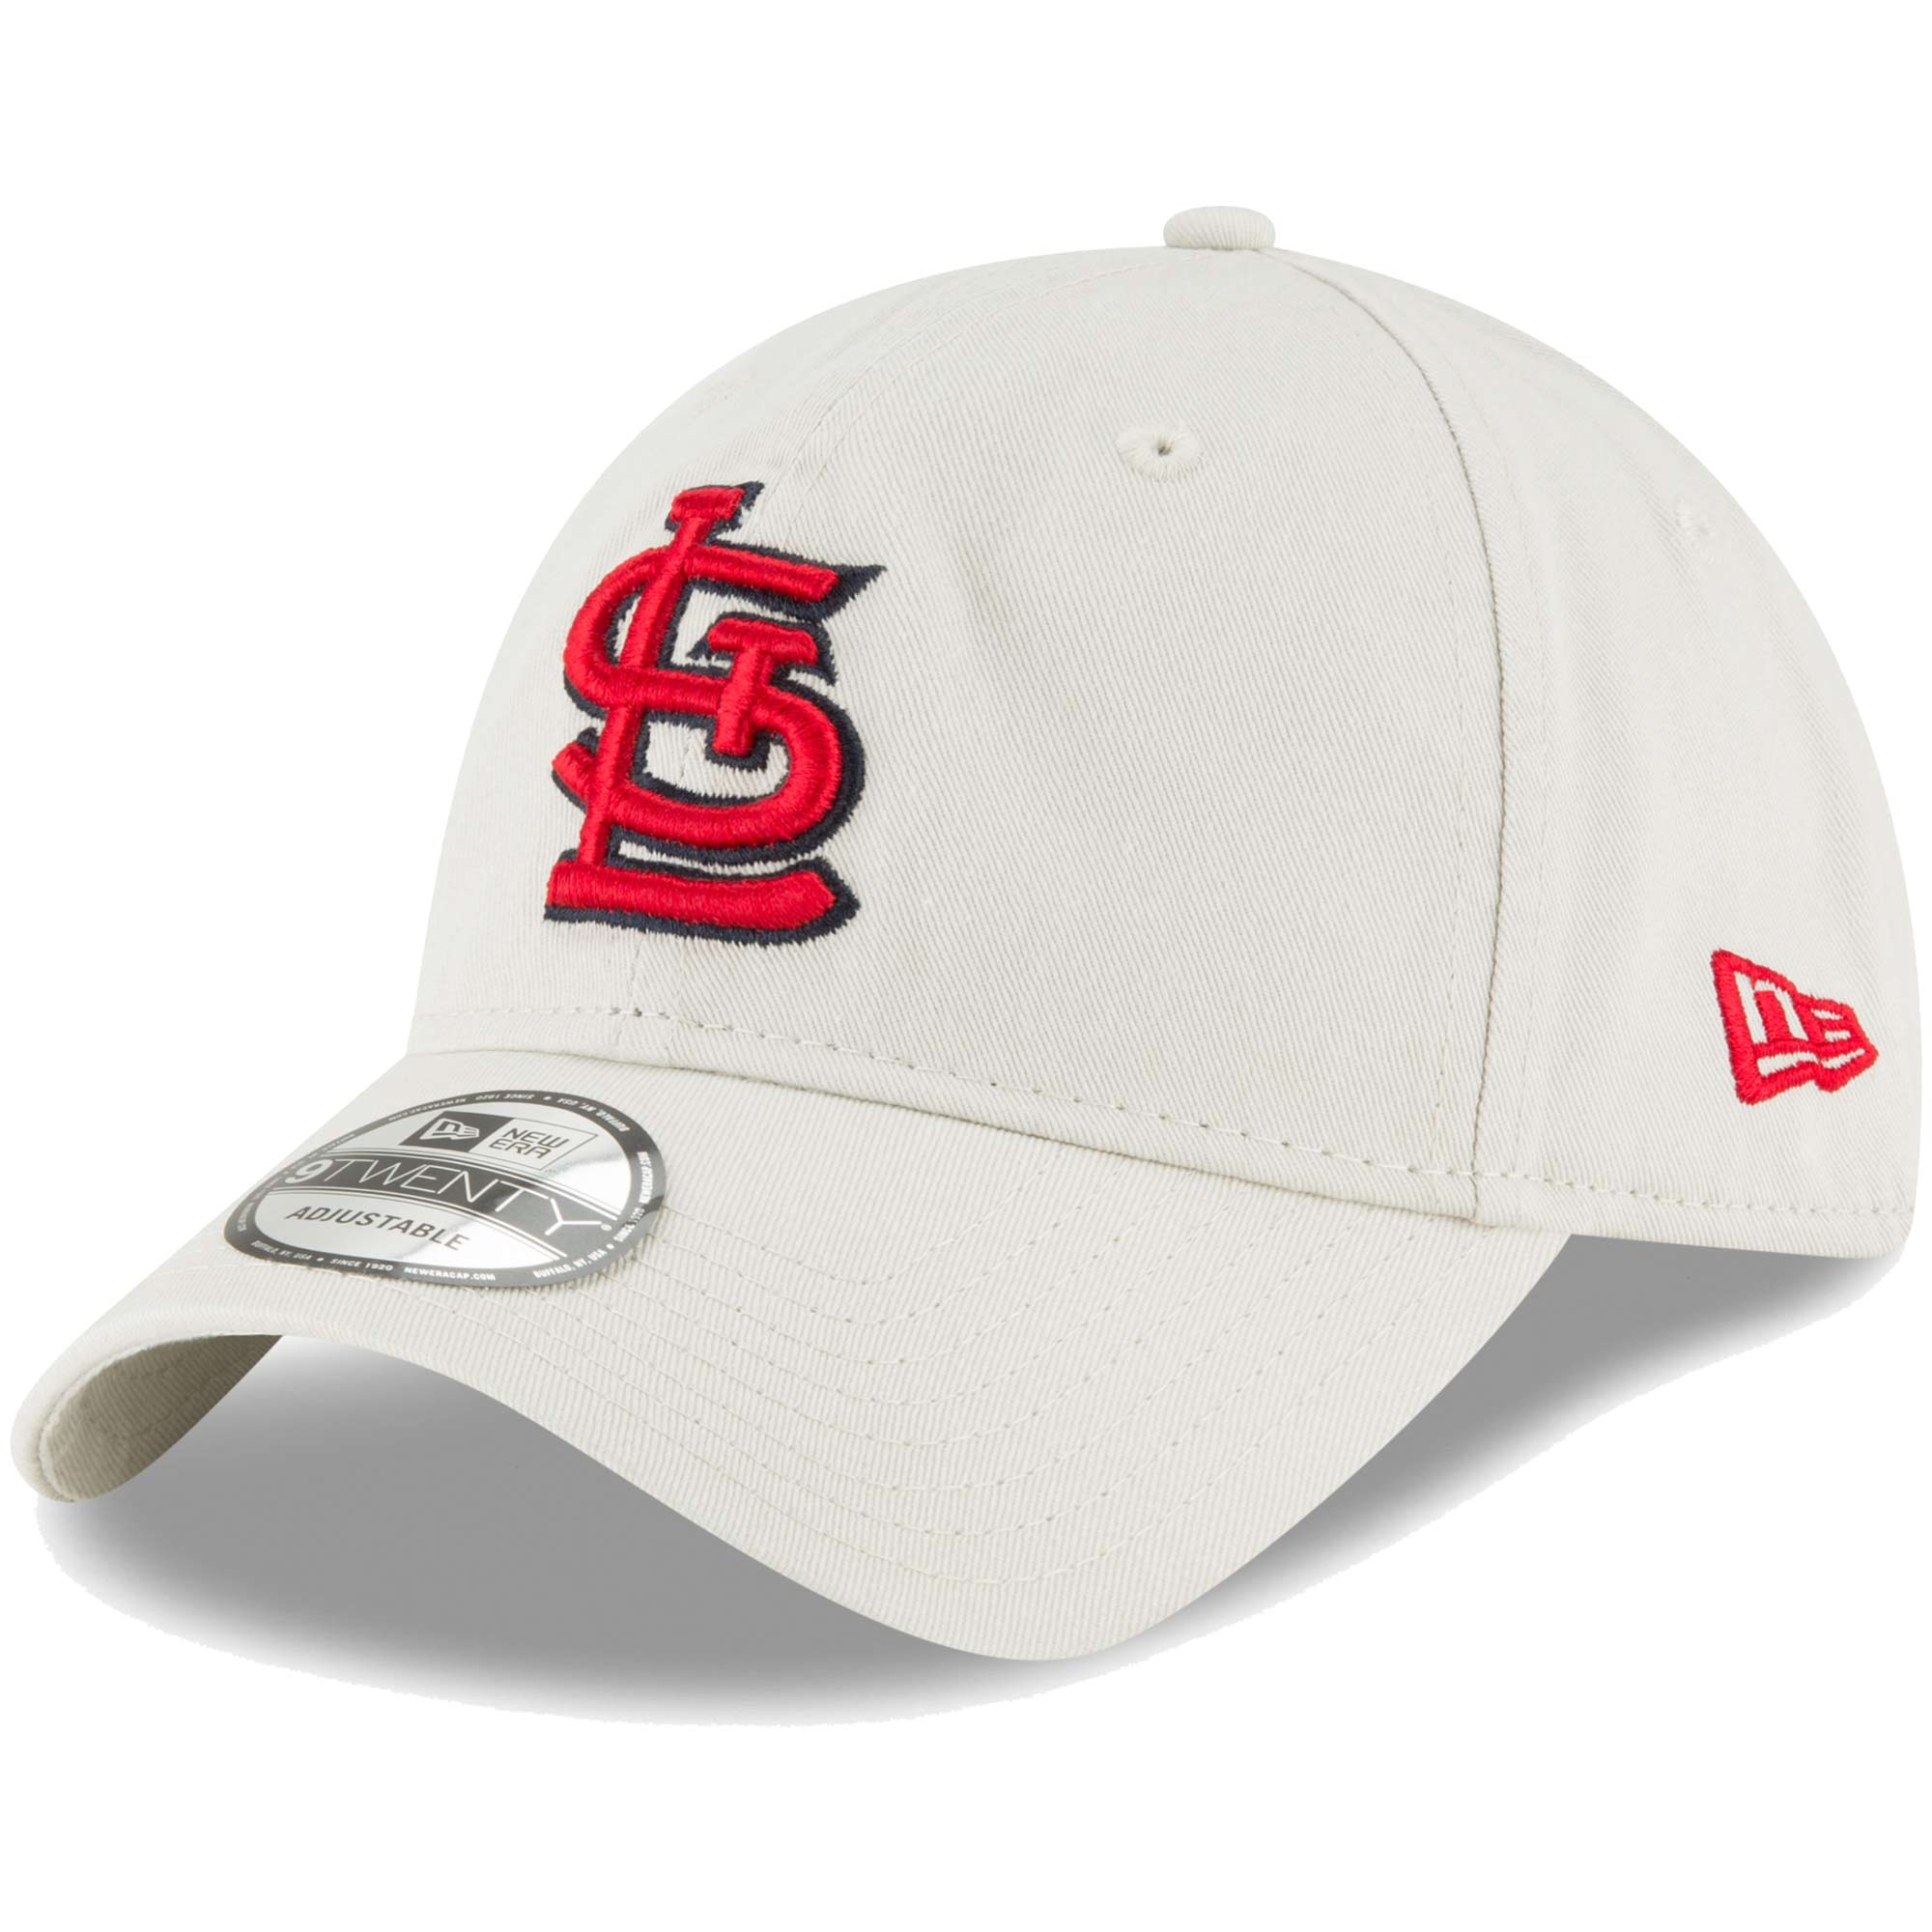 St. Louis Cardinals New Era Core Classic Twill 9TWENTY Adjustable Hat - Tan - OSFA